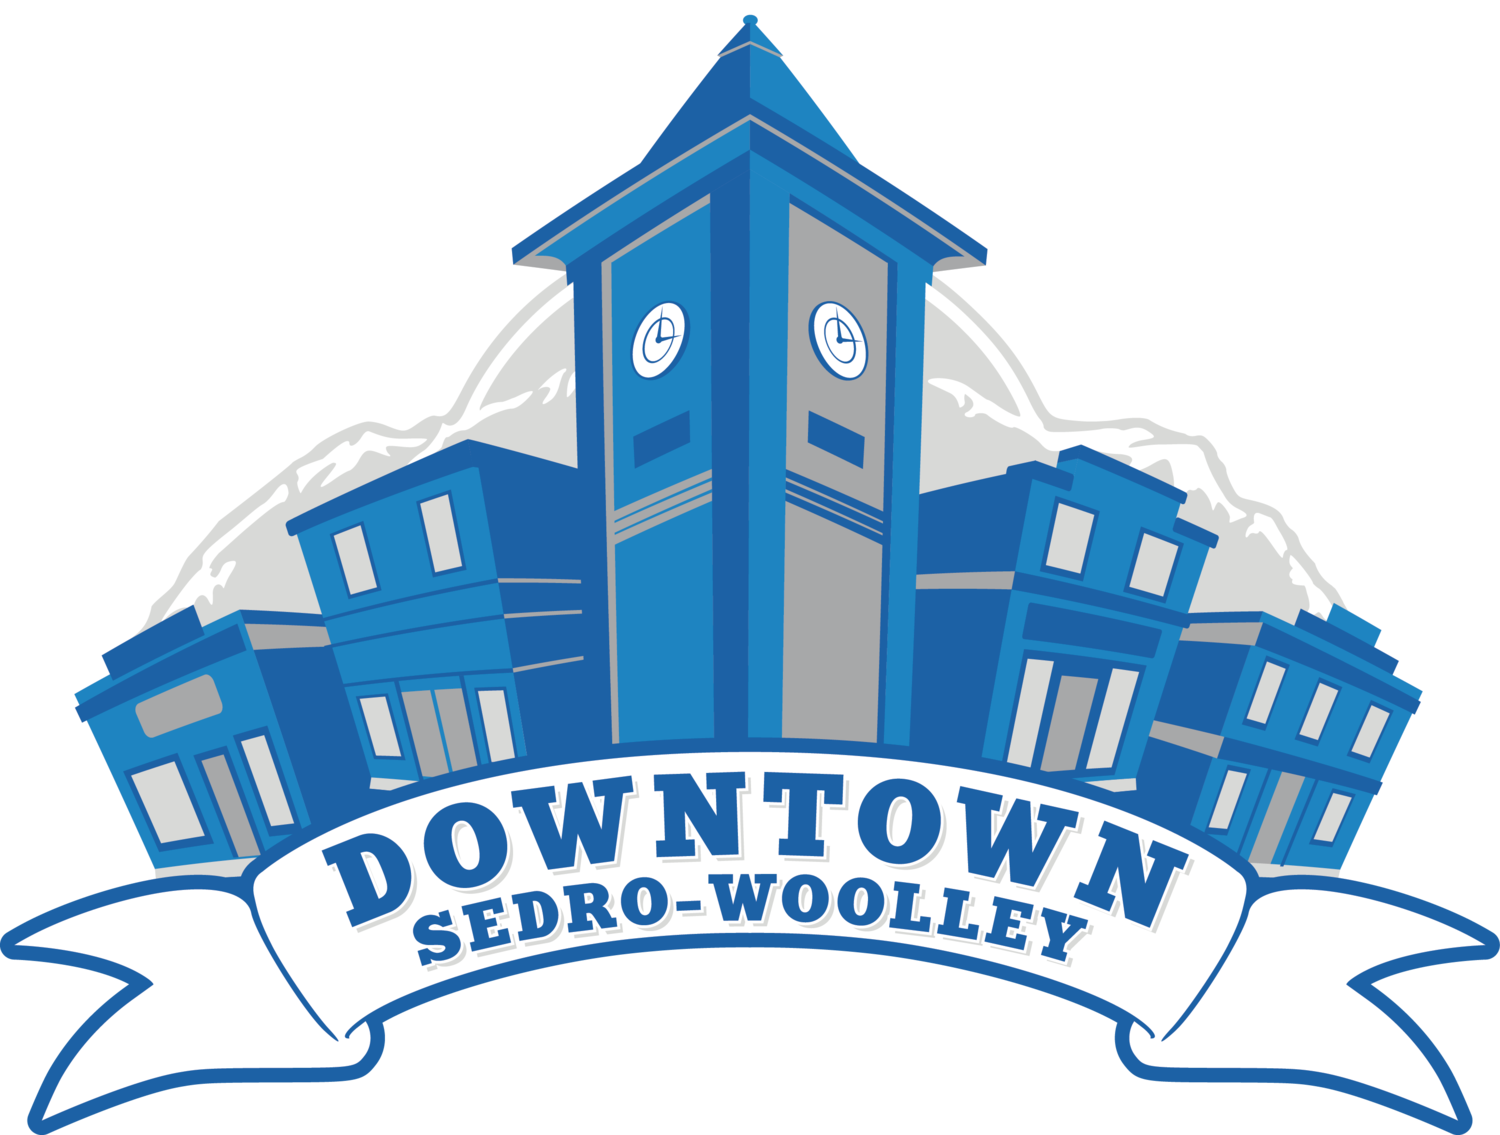 Revitalize woolley sedro downtown. Mall clipart small strip